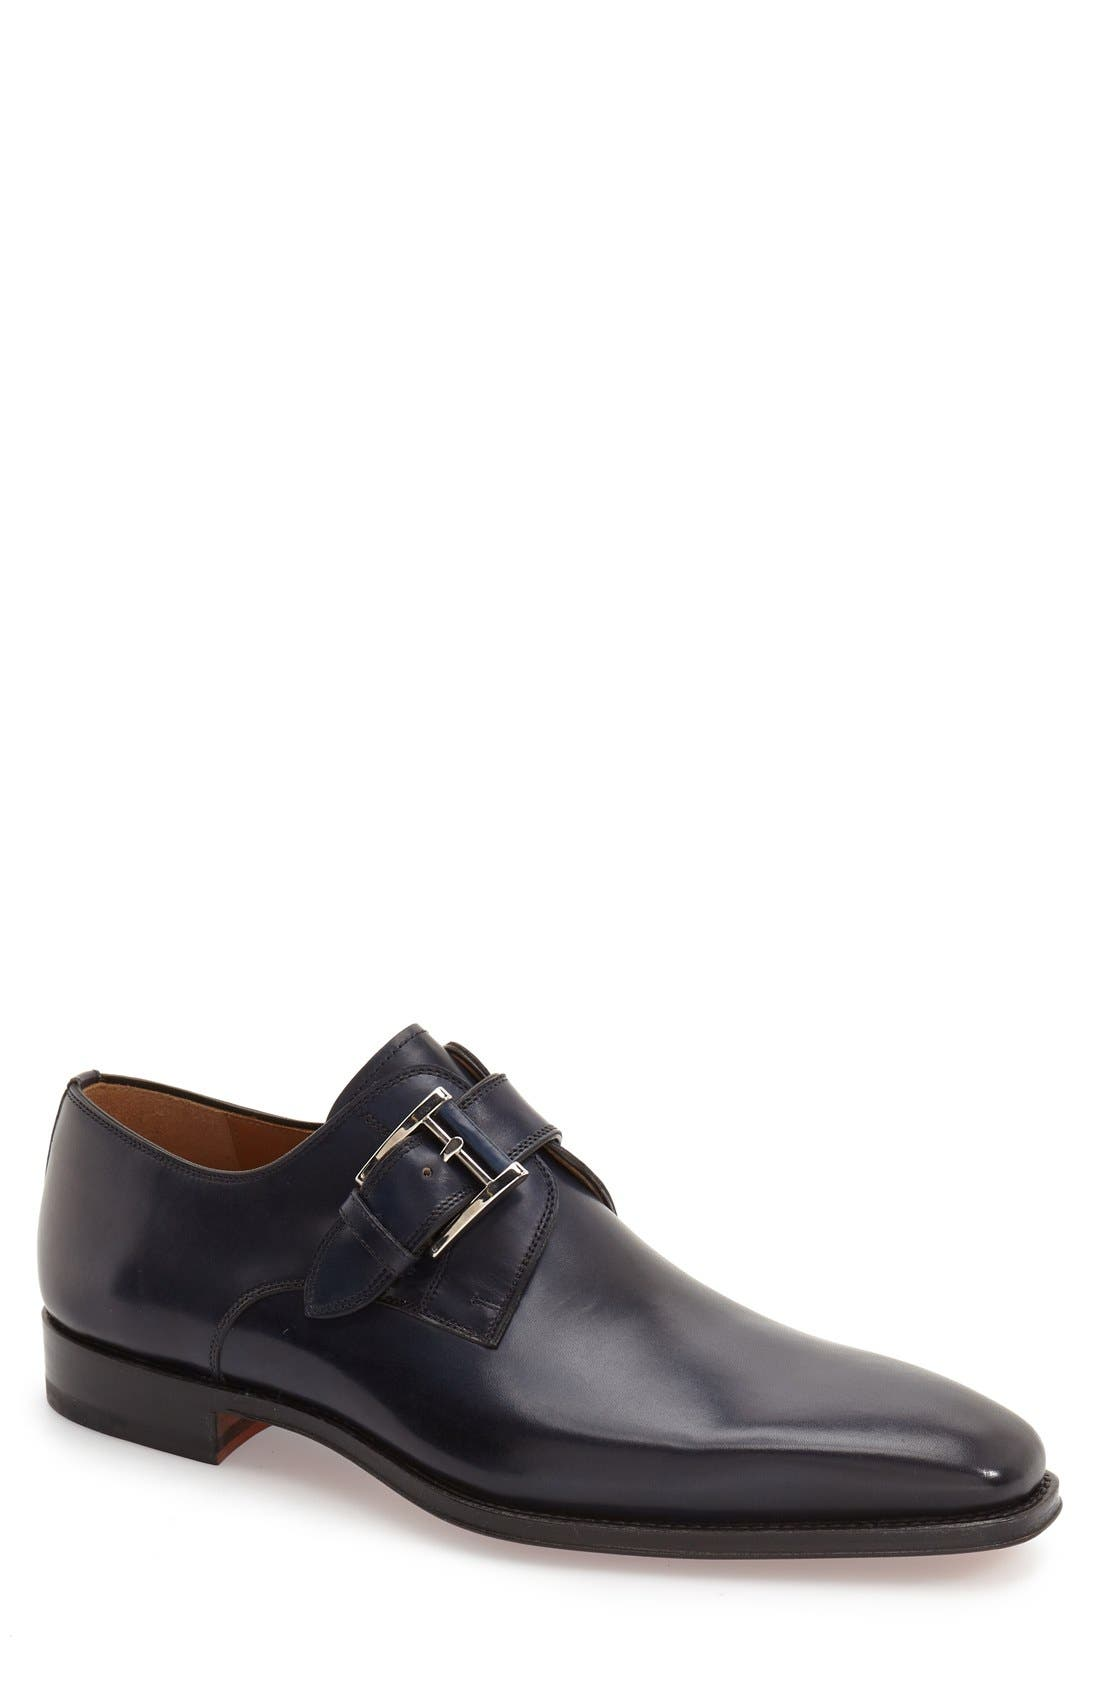 Marco Monk Strap Loafer,                         Main,                         color, Navy Leather